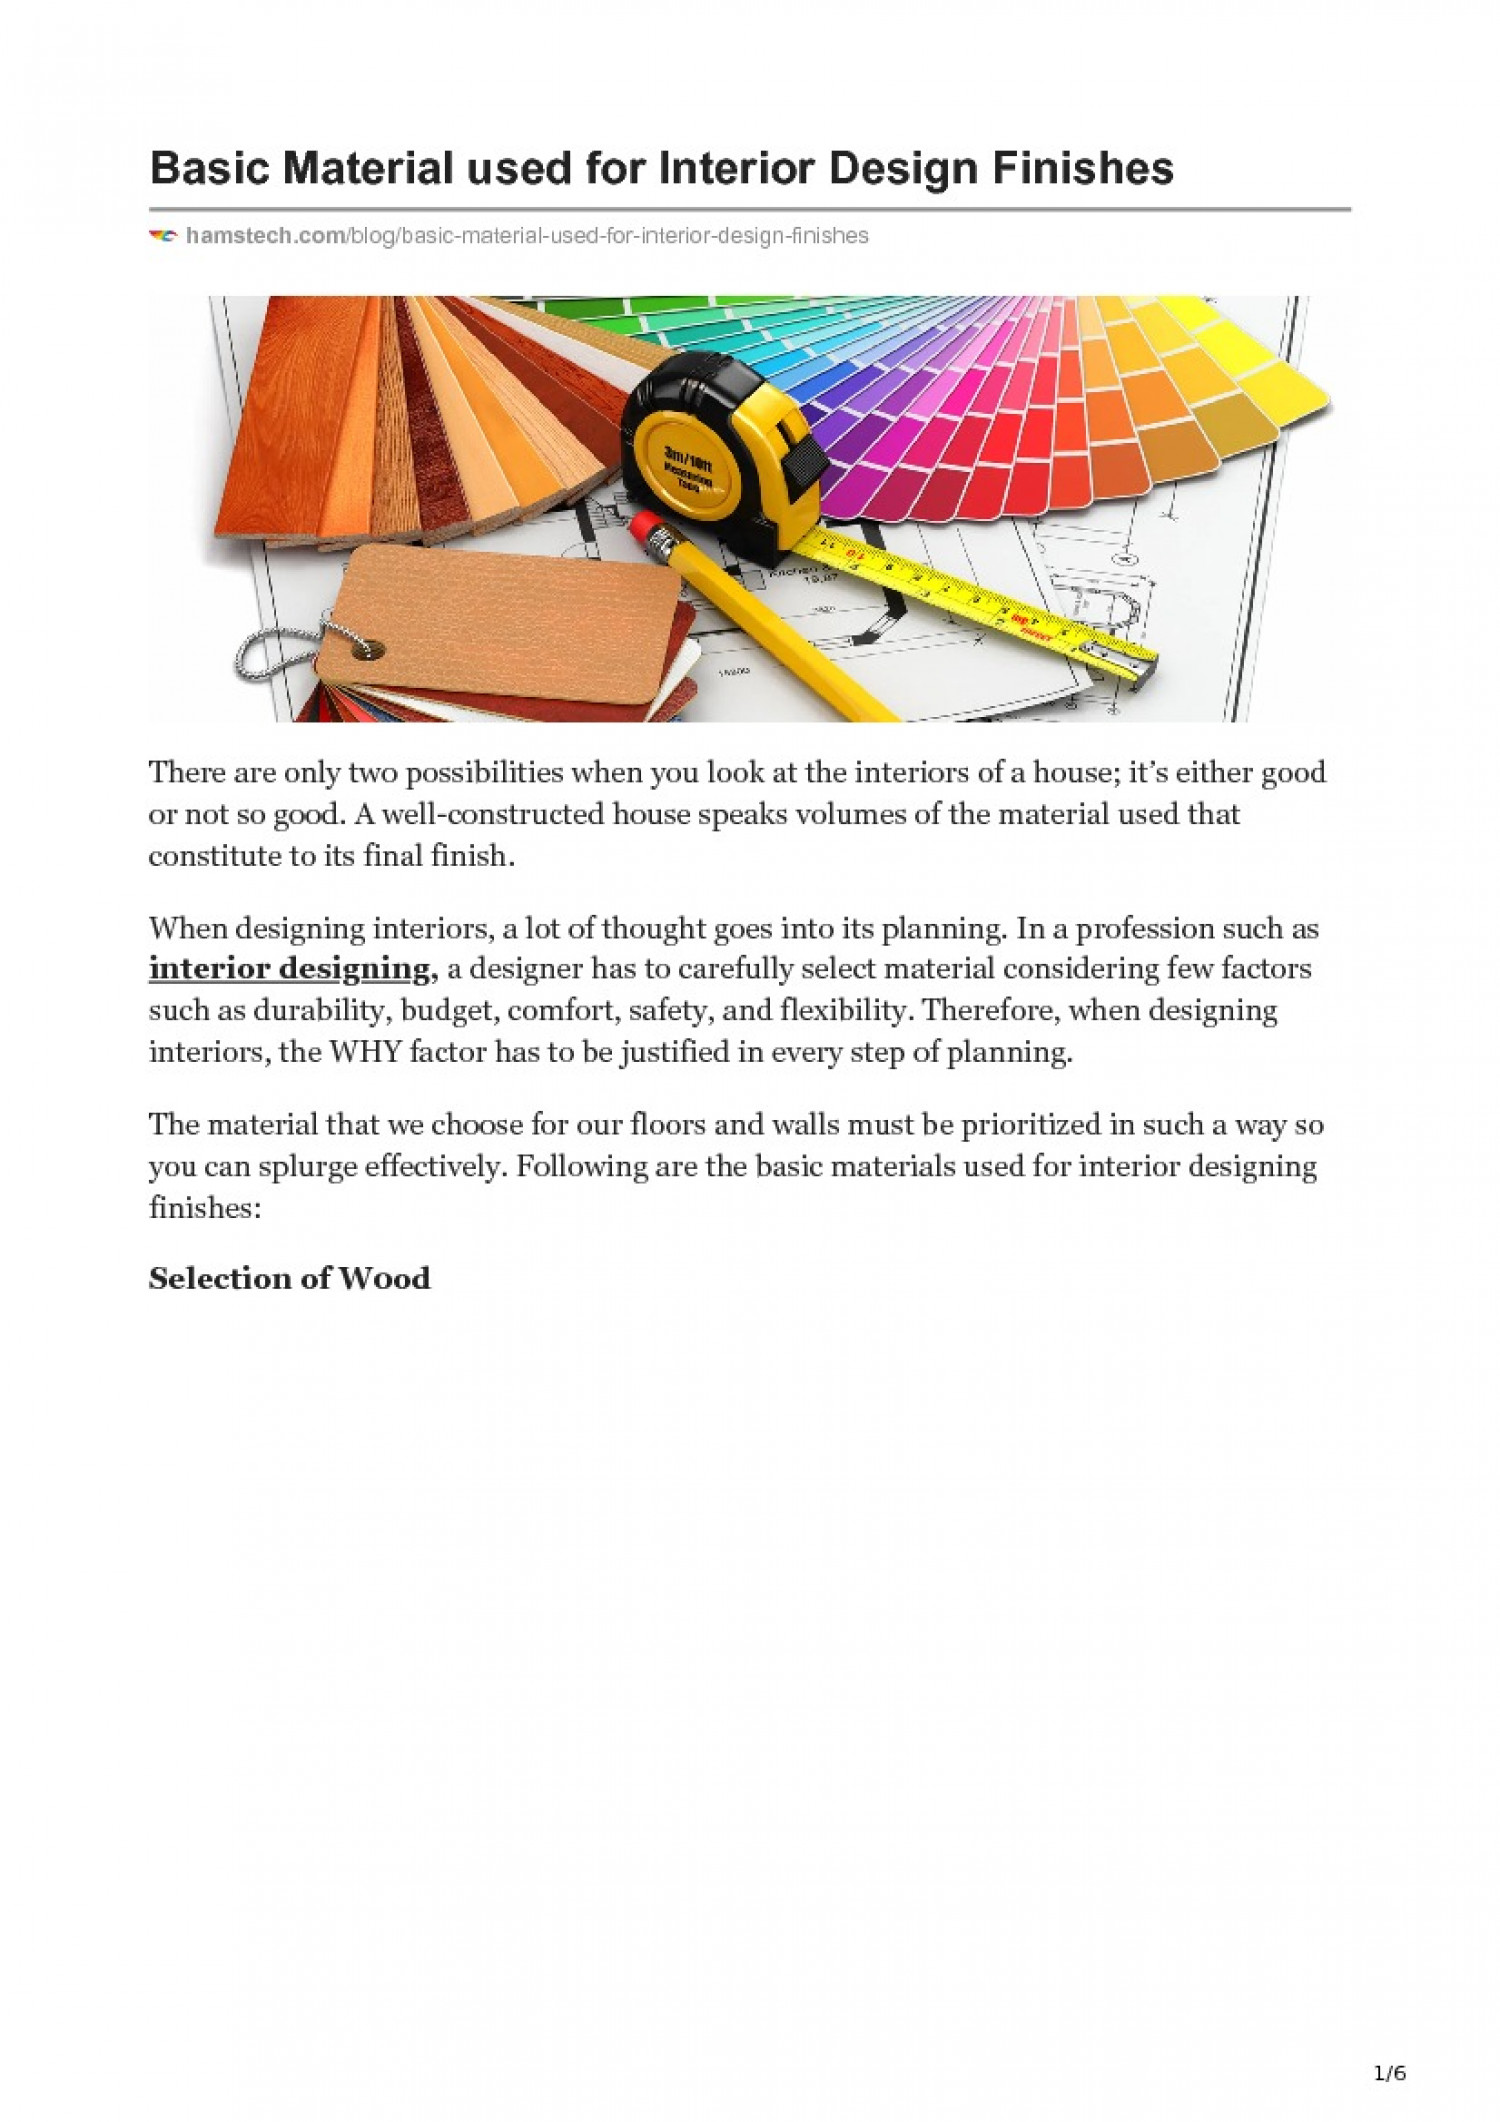 BASIC MATERIAL USED FOR INTERIOR DESIGN FINISHES Infographic